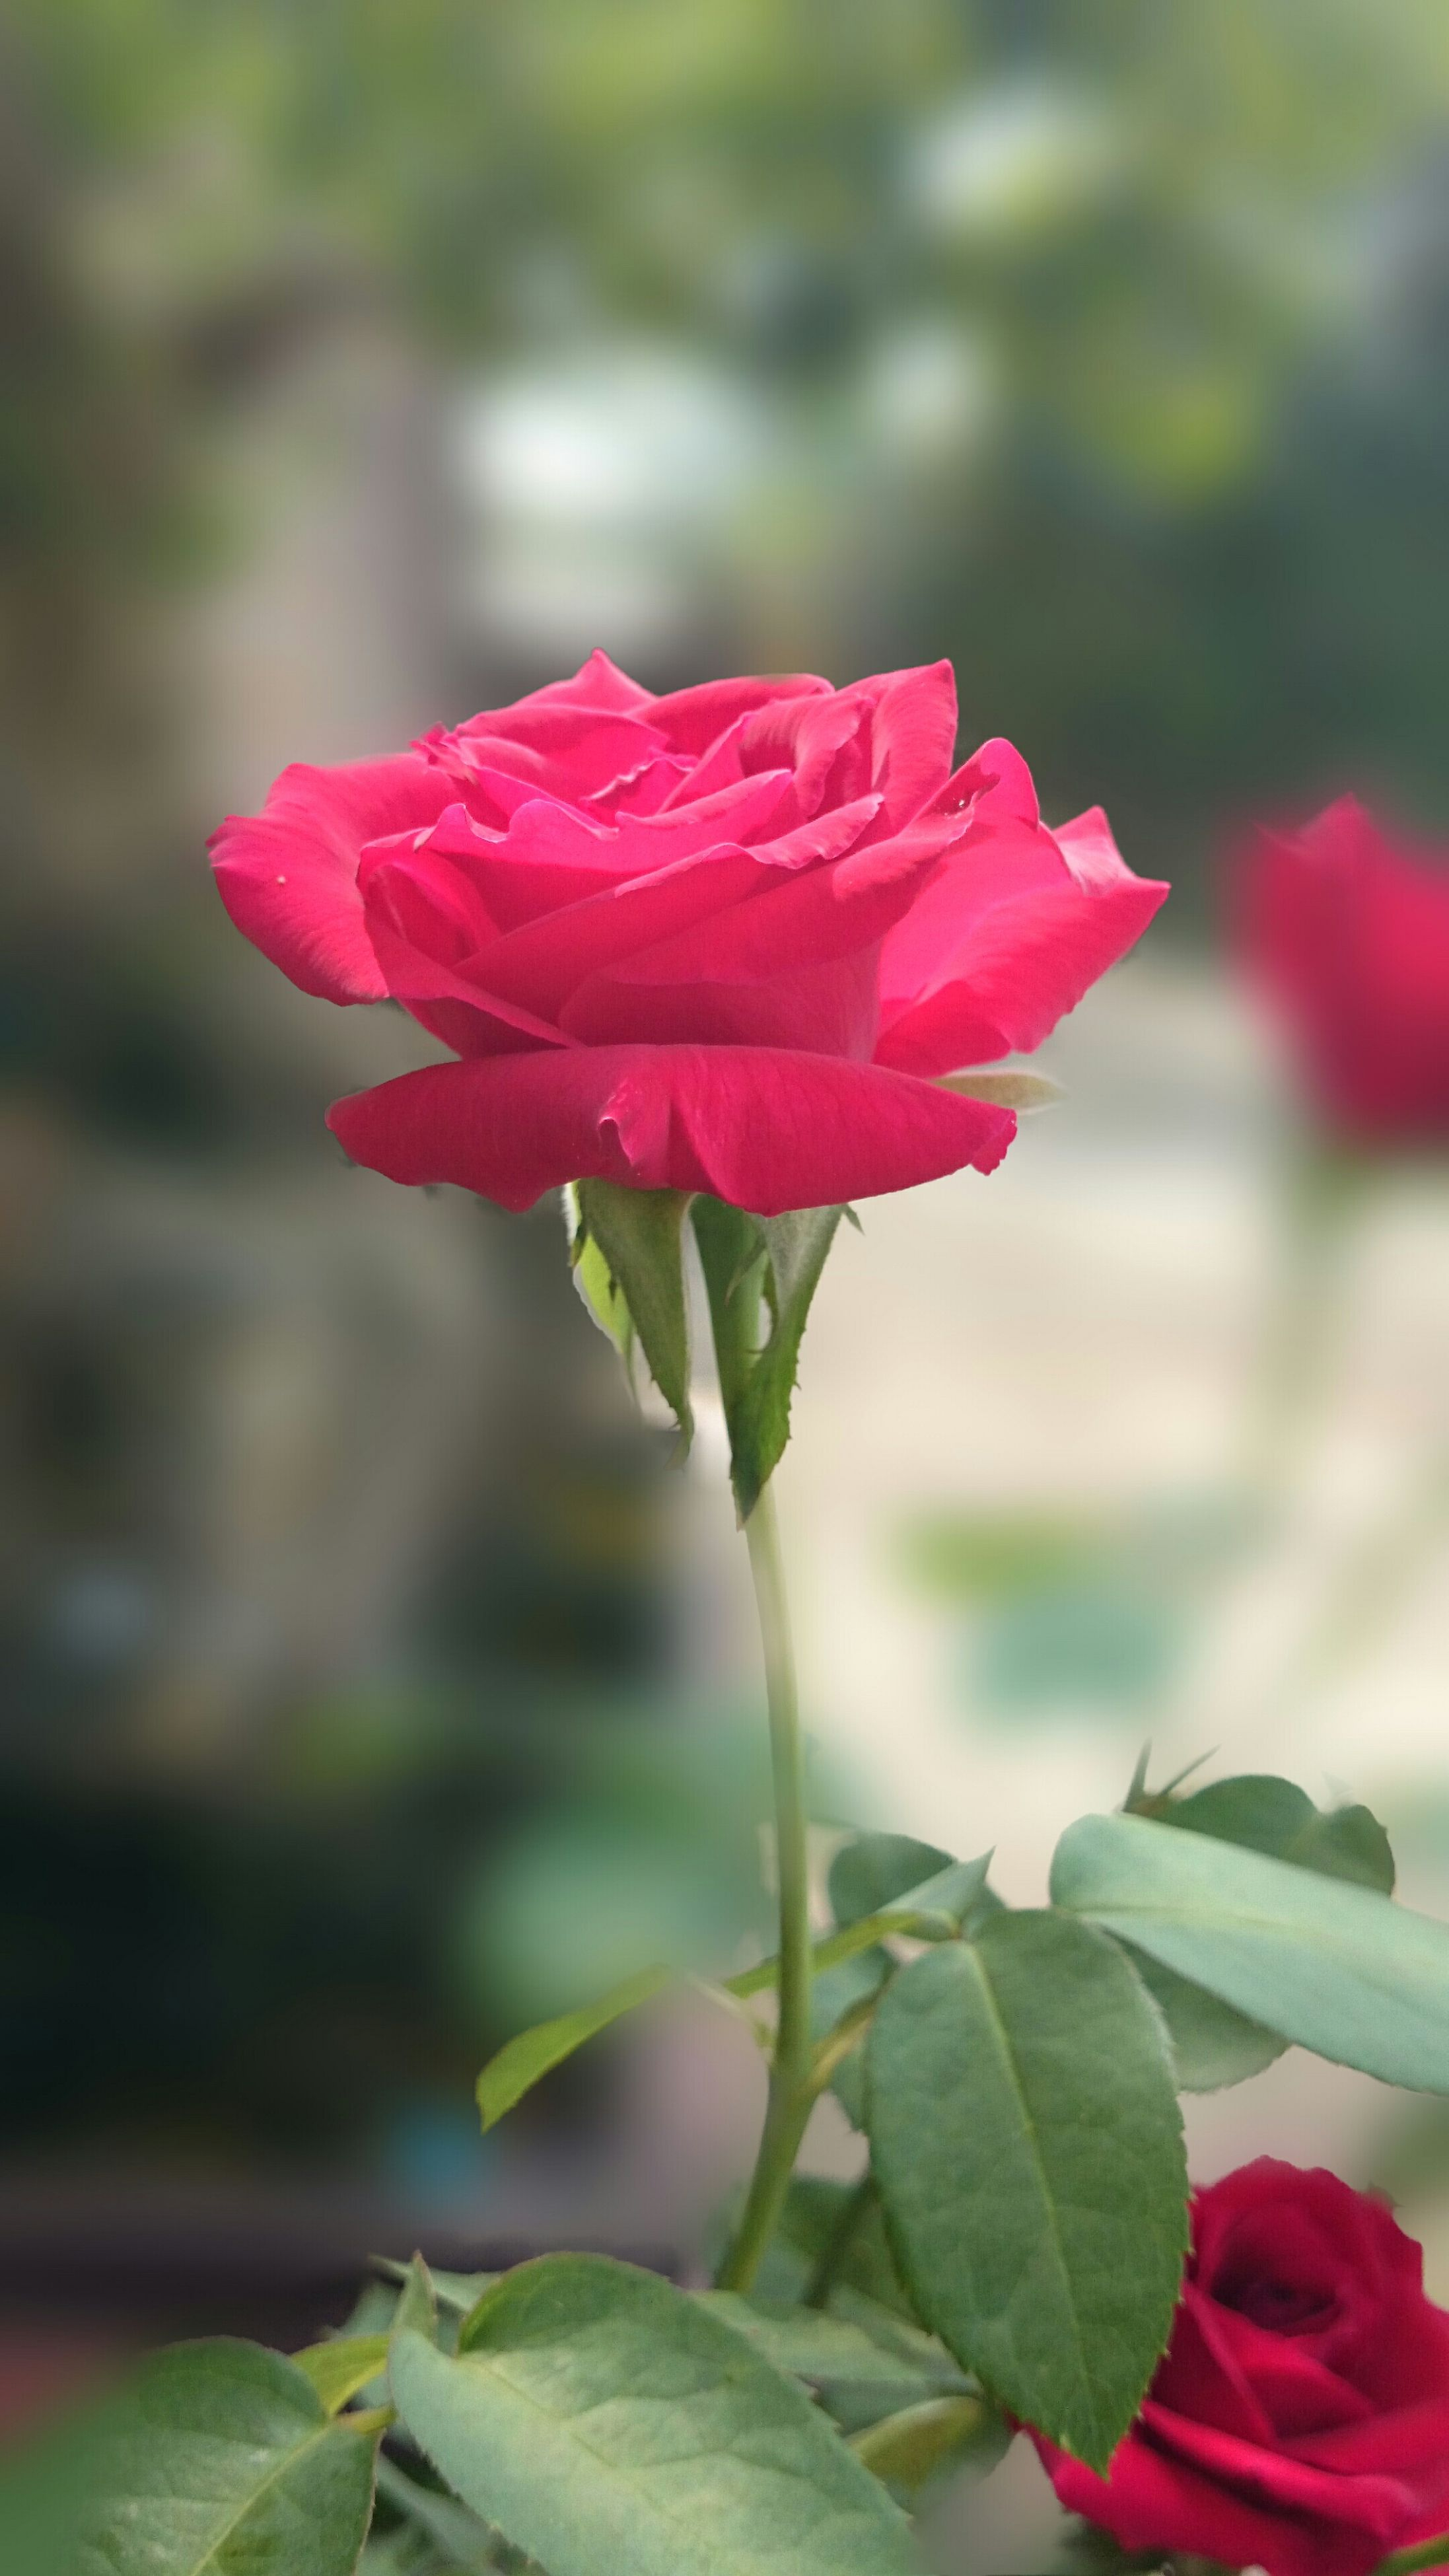 flower, petal, freshness, fragility, flower head, focus on foreground, red, growth, close-up, beauty in nature, blooming, leaf, plant, nature, single flower, rose - flower, pink color, stem, bud, in bloom